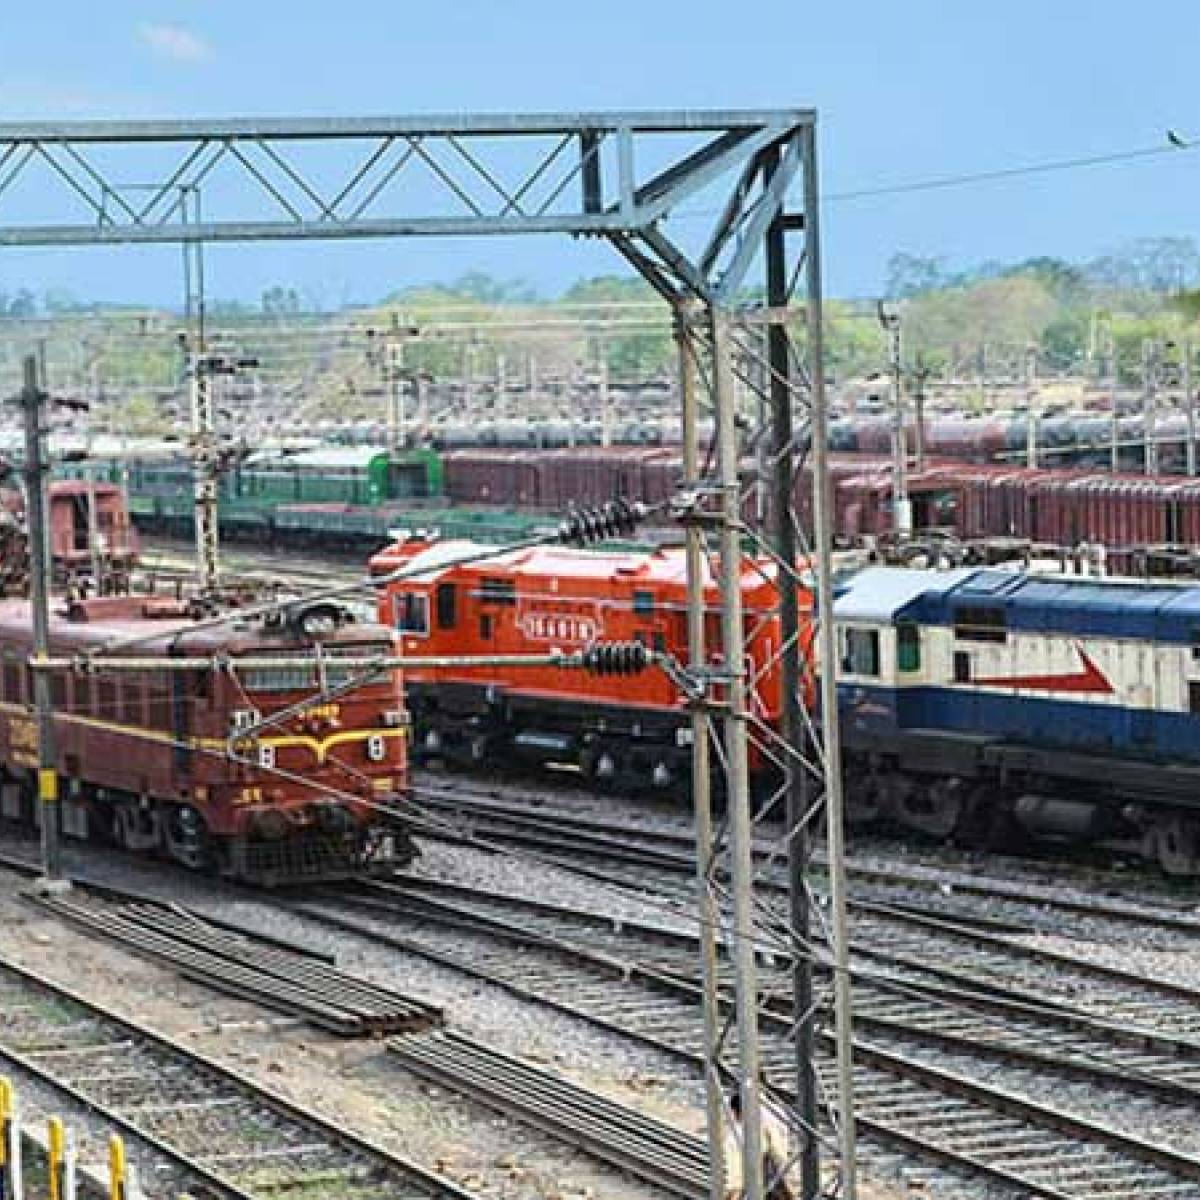 RRB Recruitment 2018: Indian Railway announces vacancies for 10th